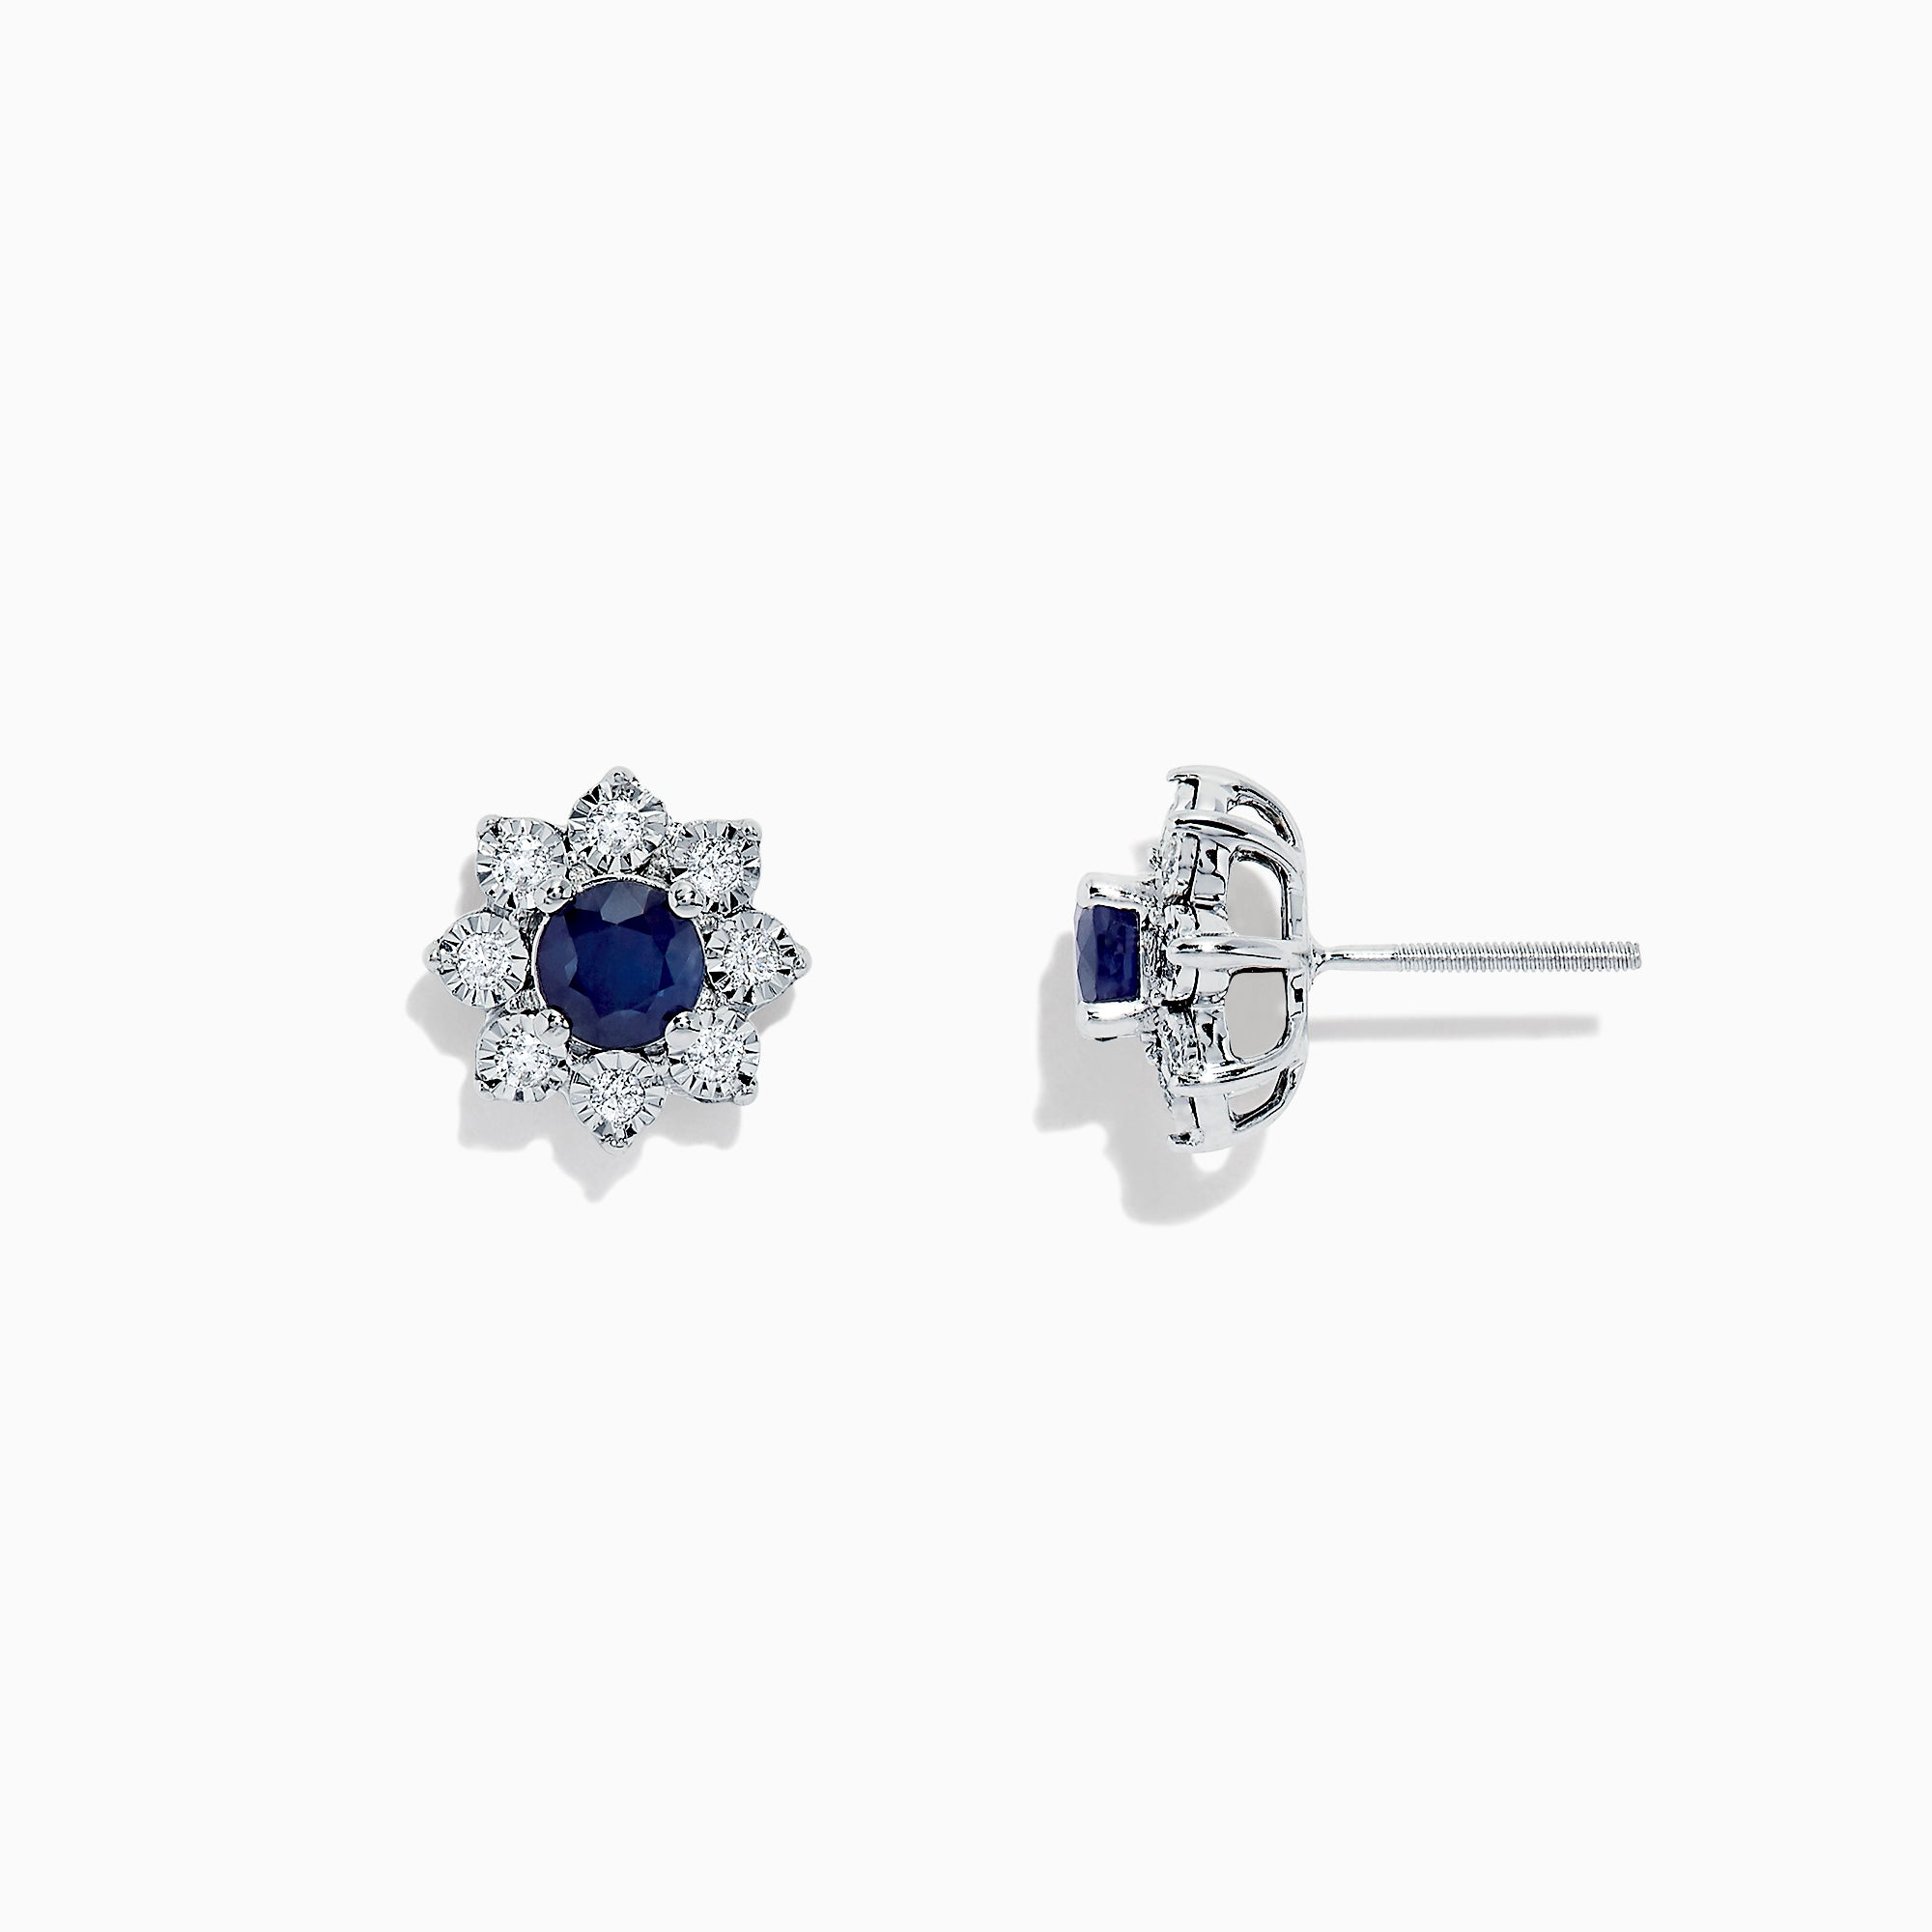 Effy Royale Bleu 14K White Gold Sapphire and Diamond Earrings, 1.44 TCW